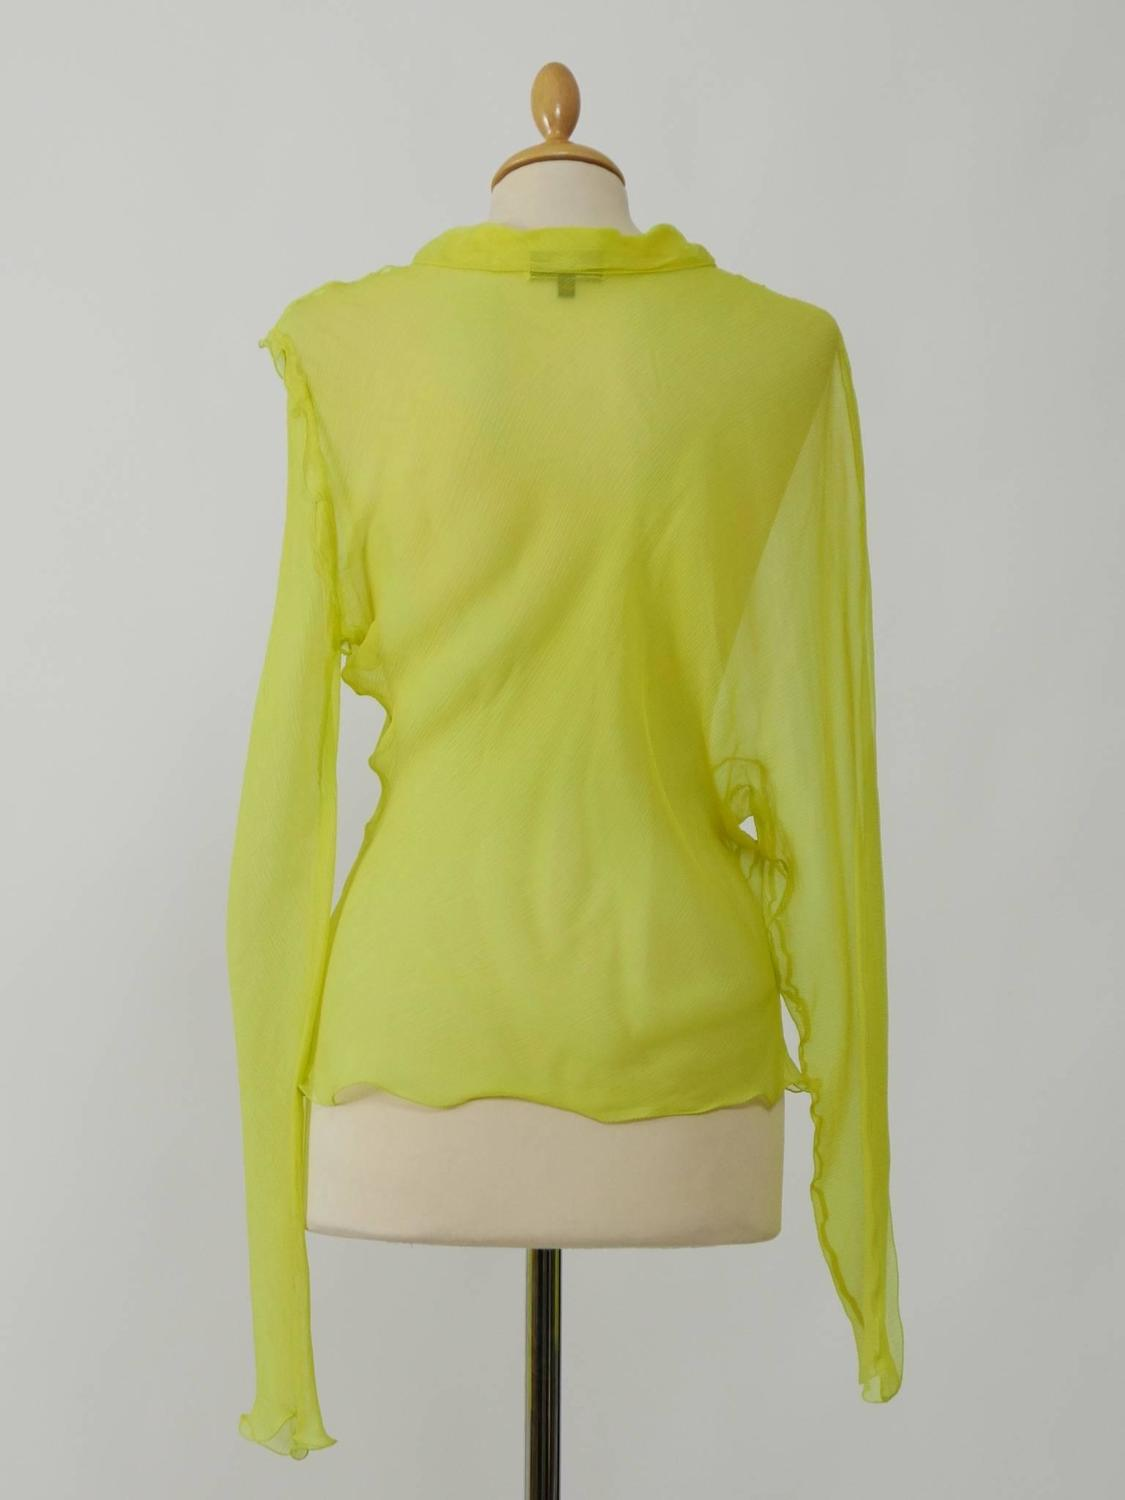 Fendi Yellow Lime Organdy Blouse Shirt For Sale At 1stdibs